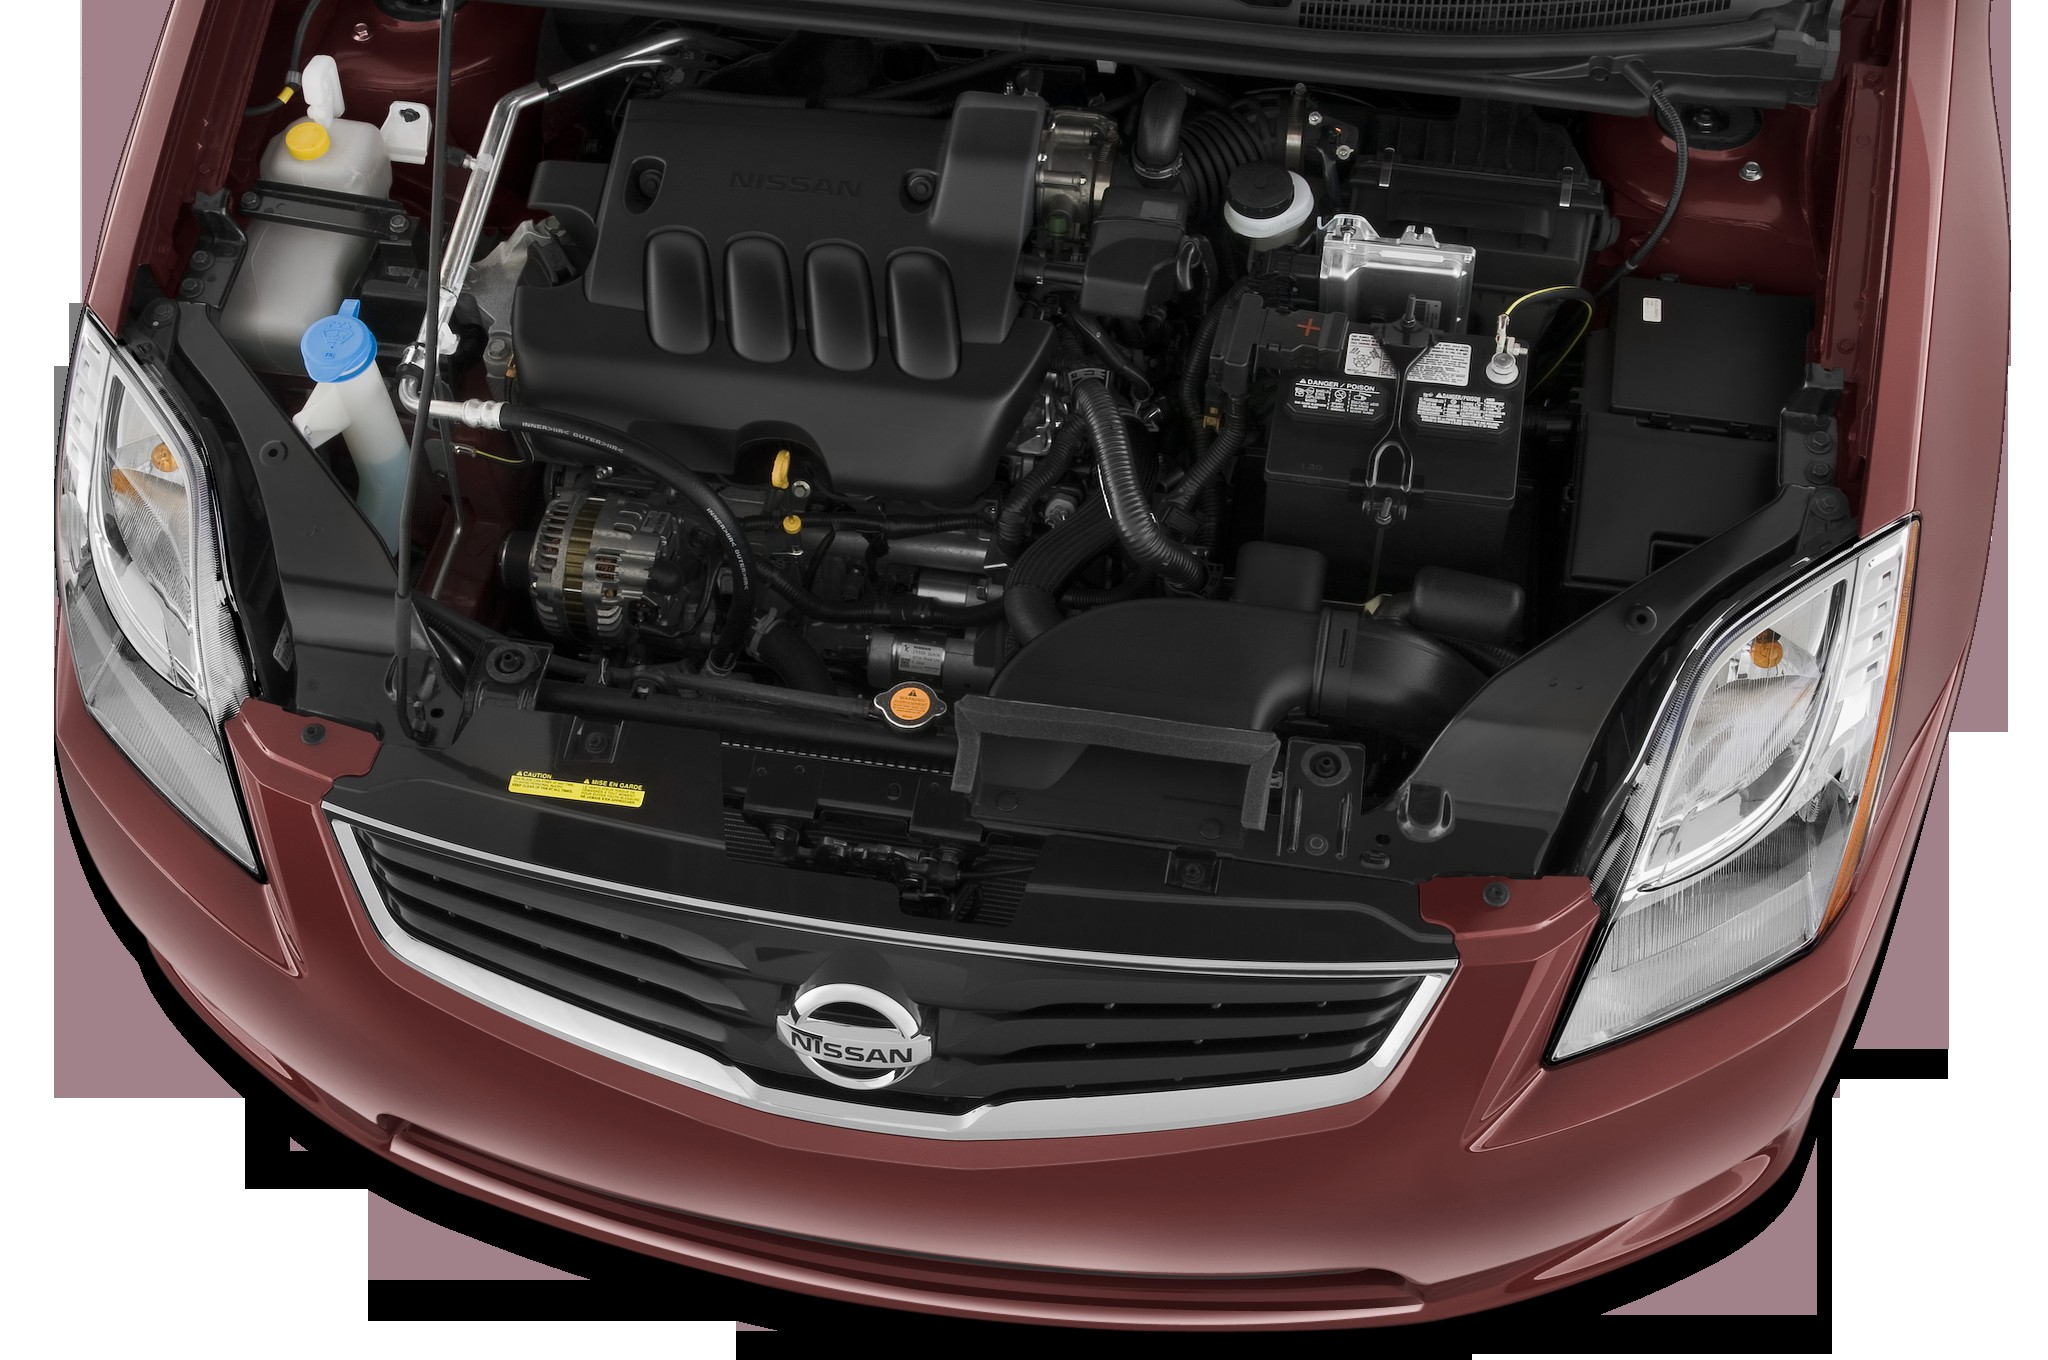 Nissan Leaf Engine Diagram 2011 Lease Pricing Will Rival Honda Accord Toyota Prius Of